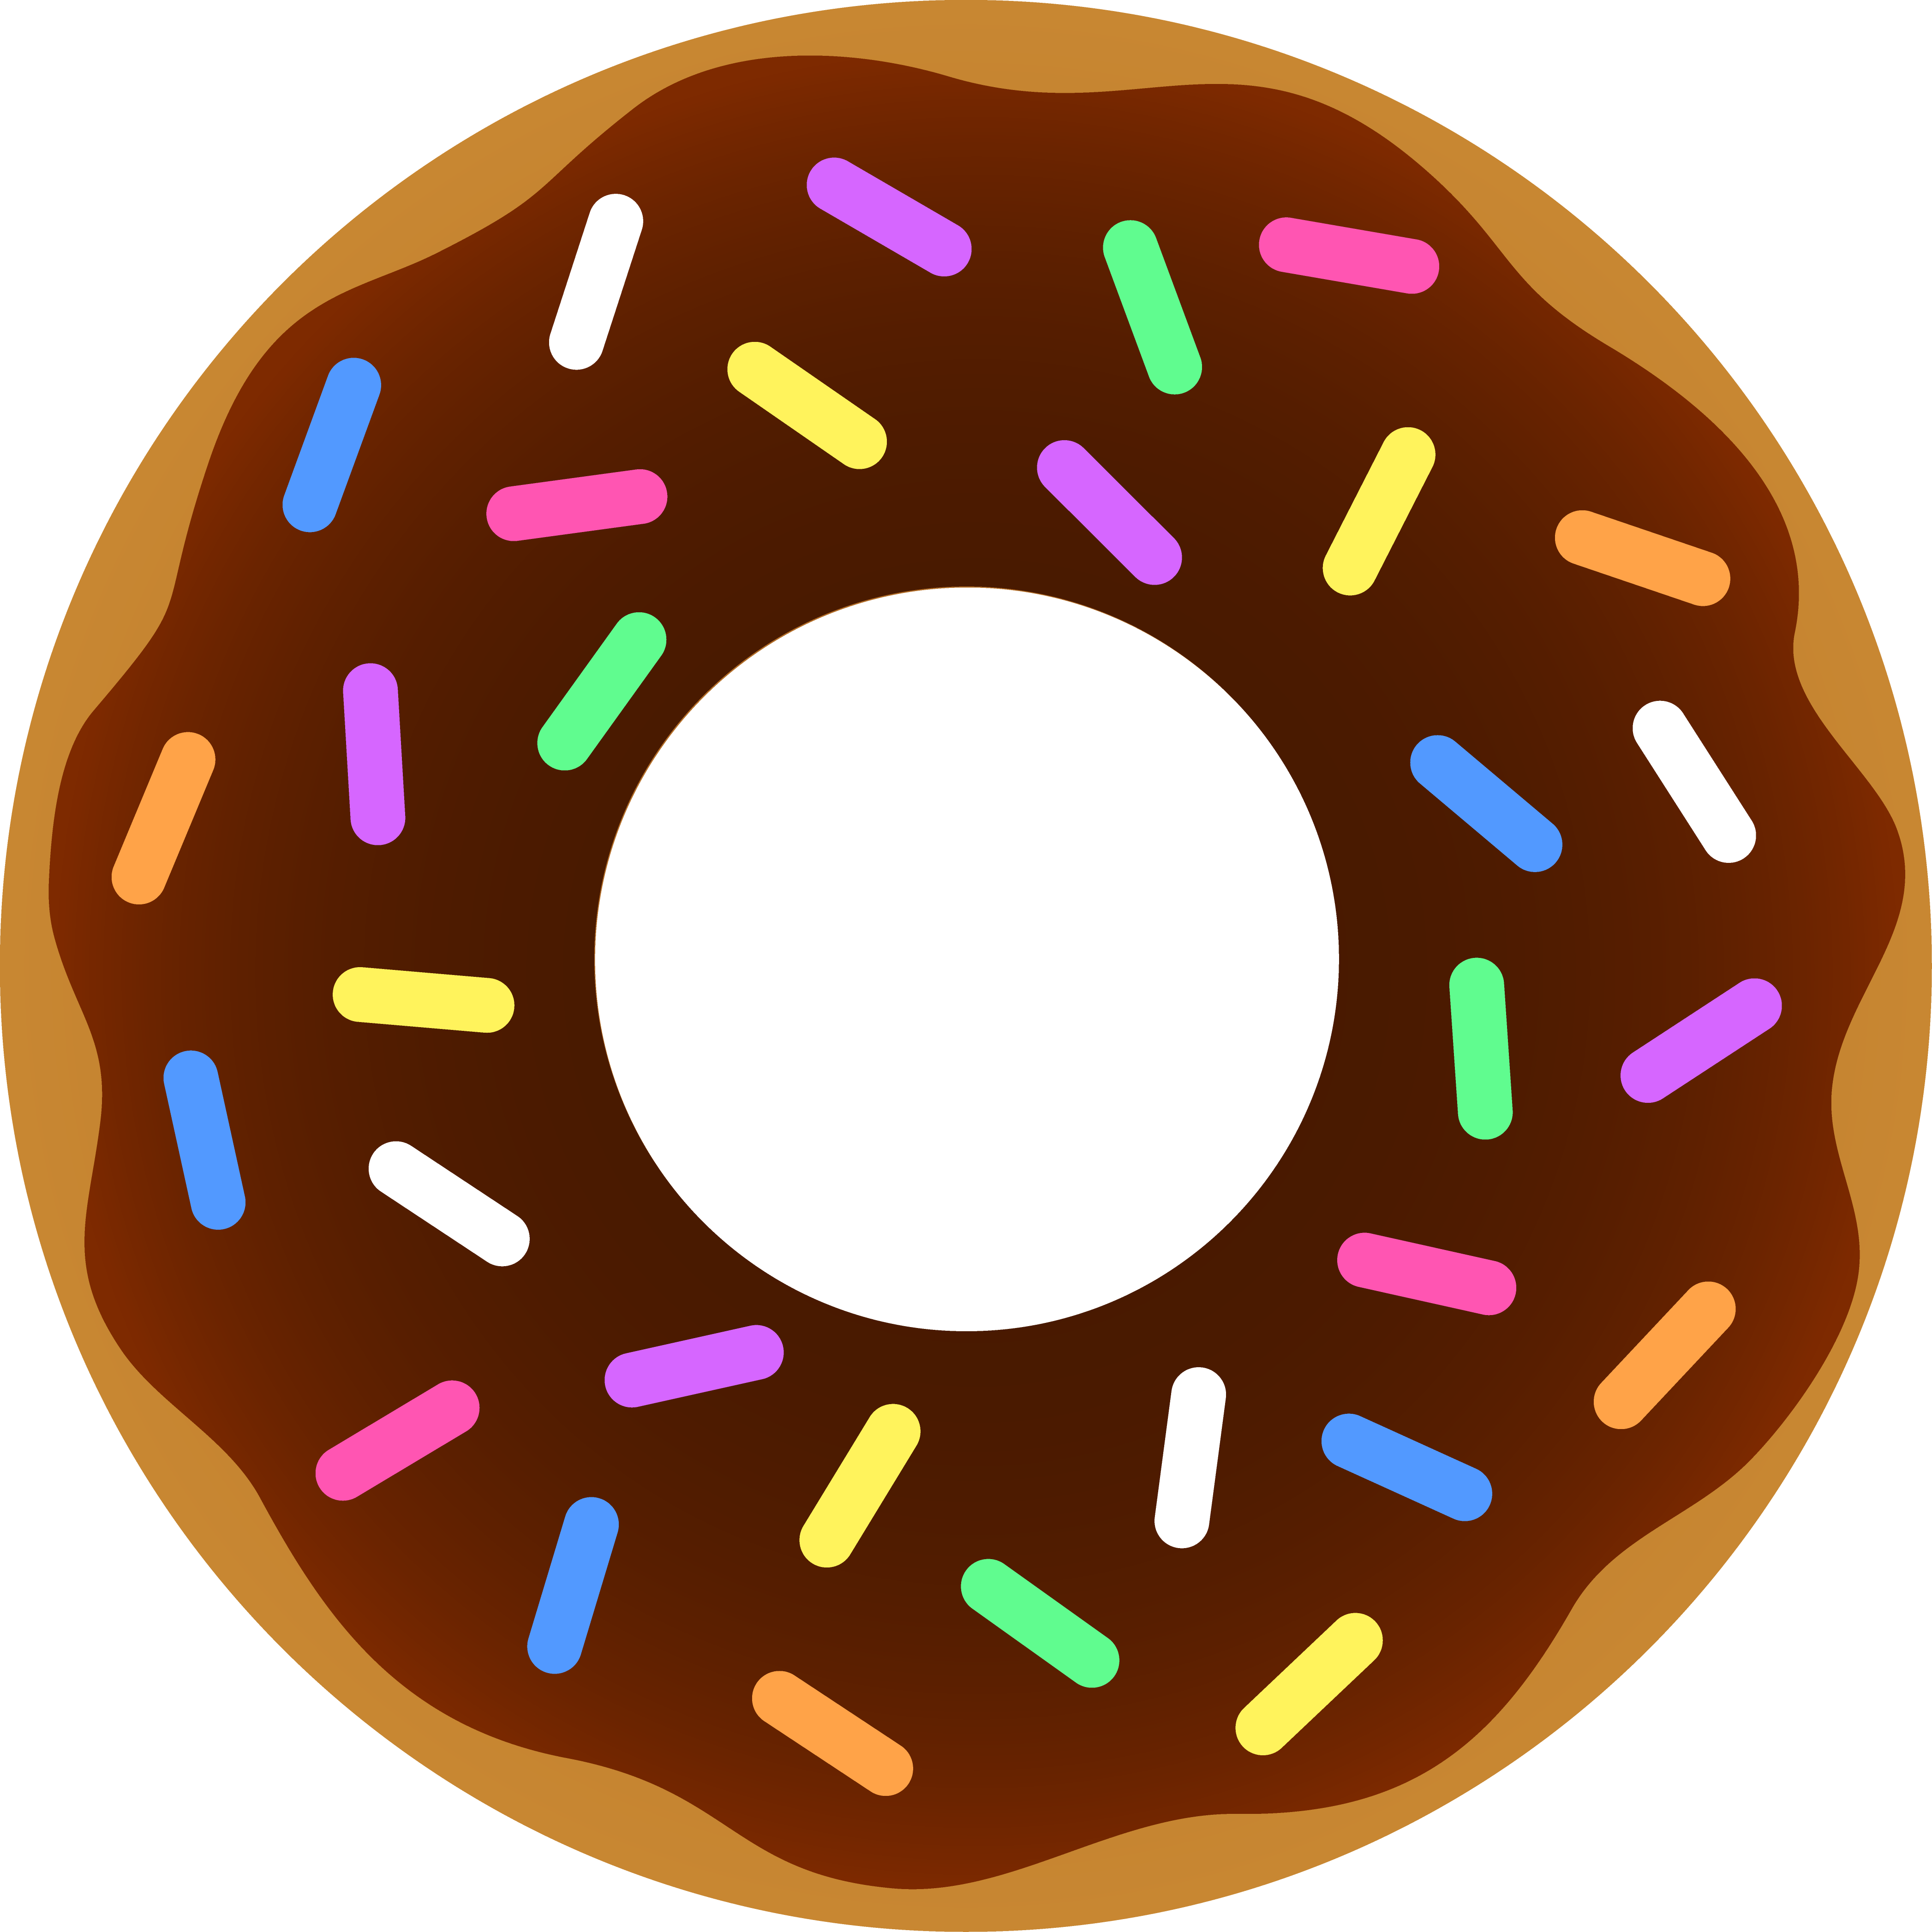 Cartoon donut png. Dunkin donuts coffee and